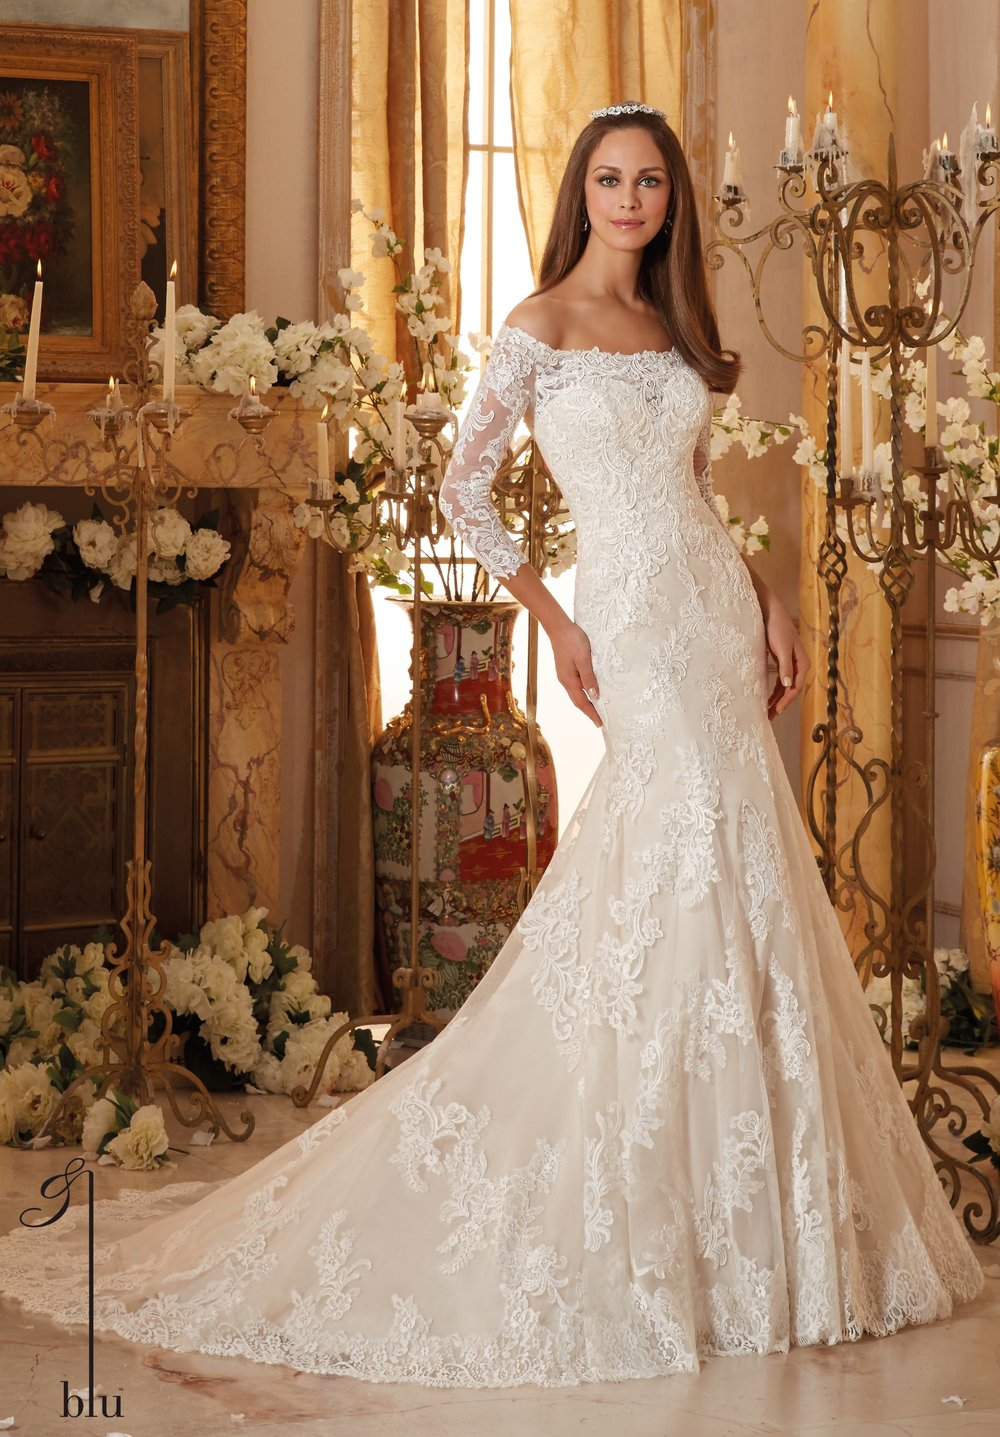 Off-shoulder 3/4 sleeves wedding dress